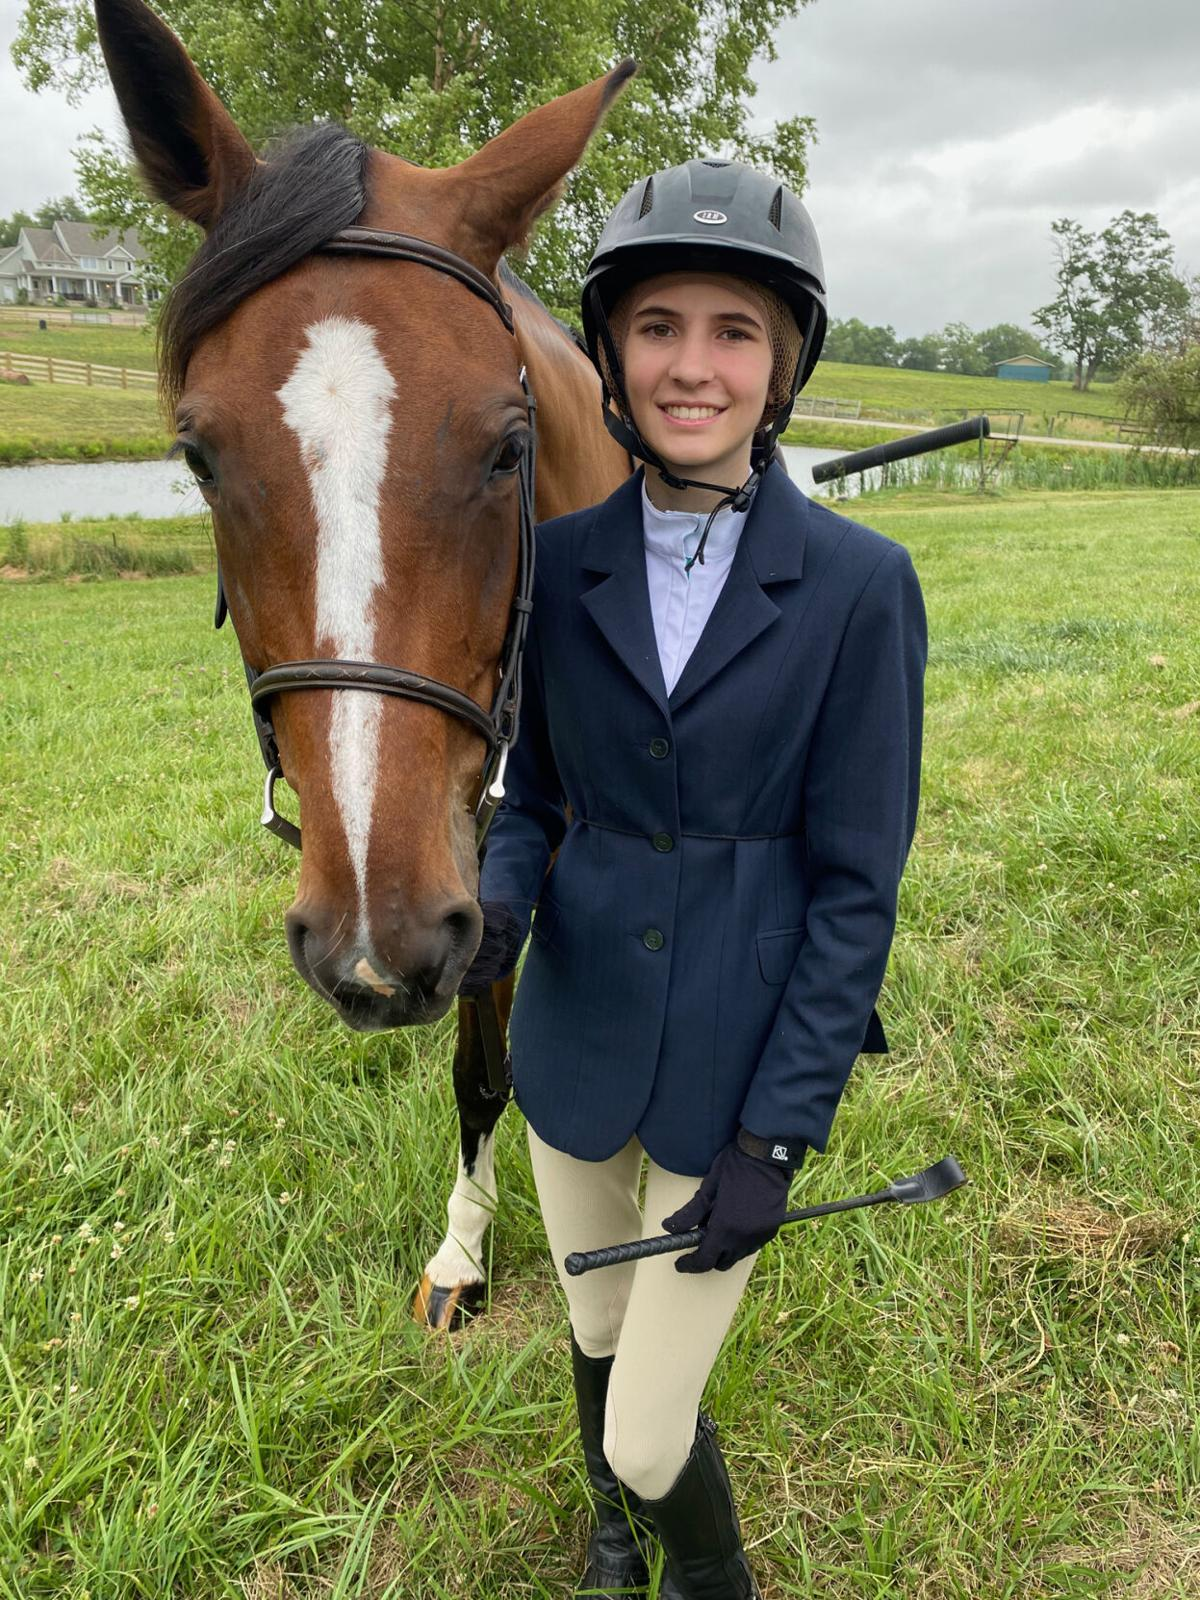 In equestrian competitions, E'town girl jumps to victory